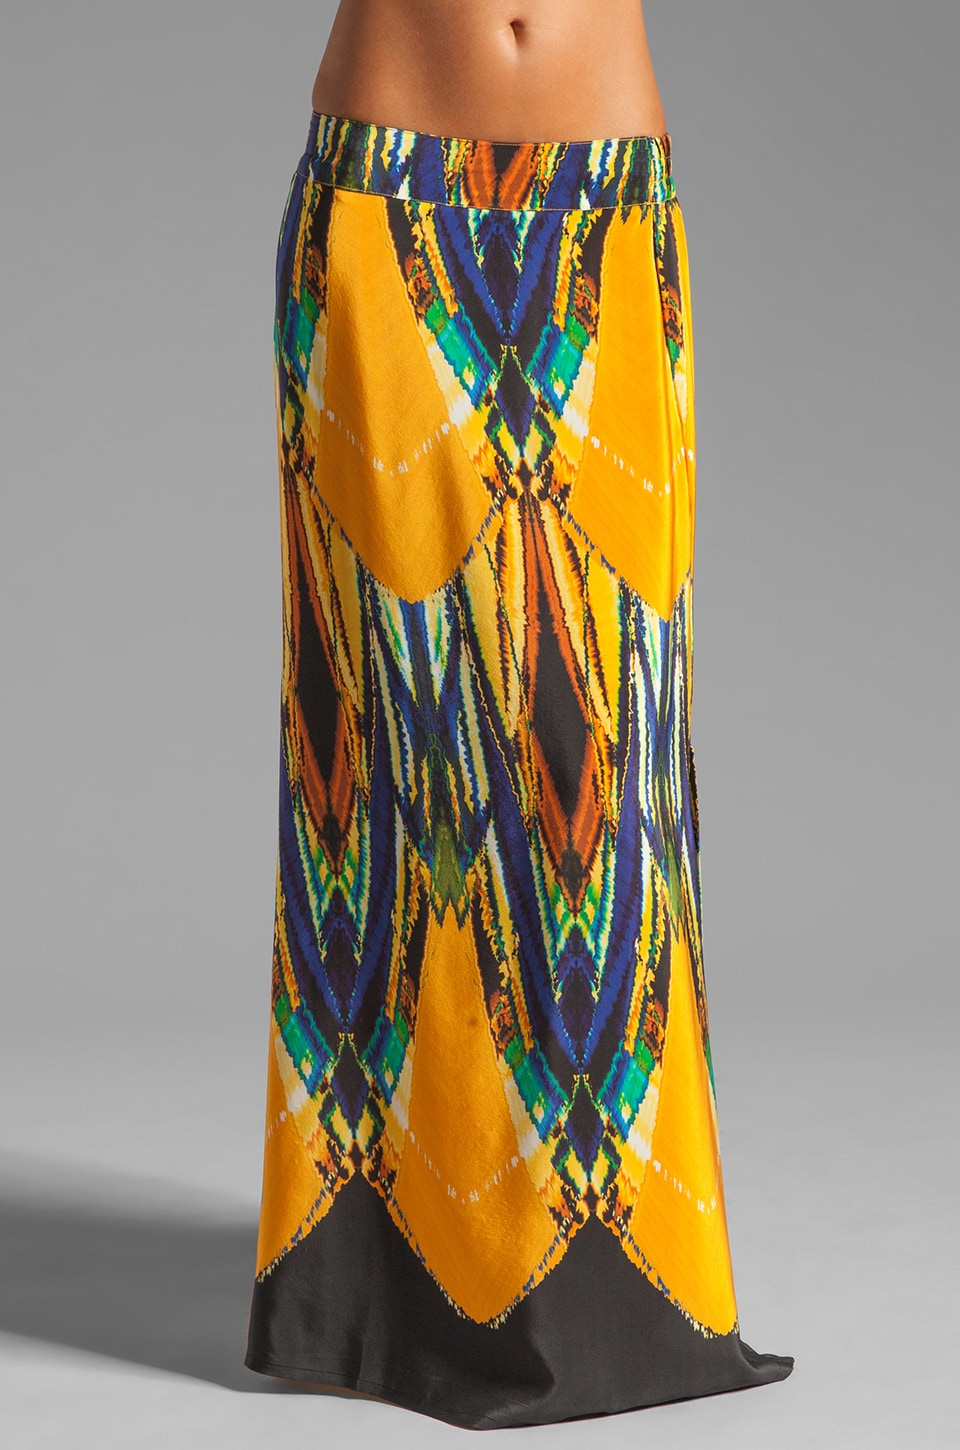 Vix Swimwear Tribal Gabby Long Skirt in Print